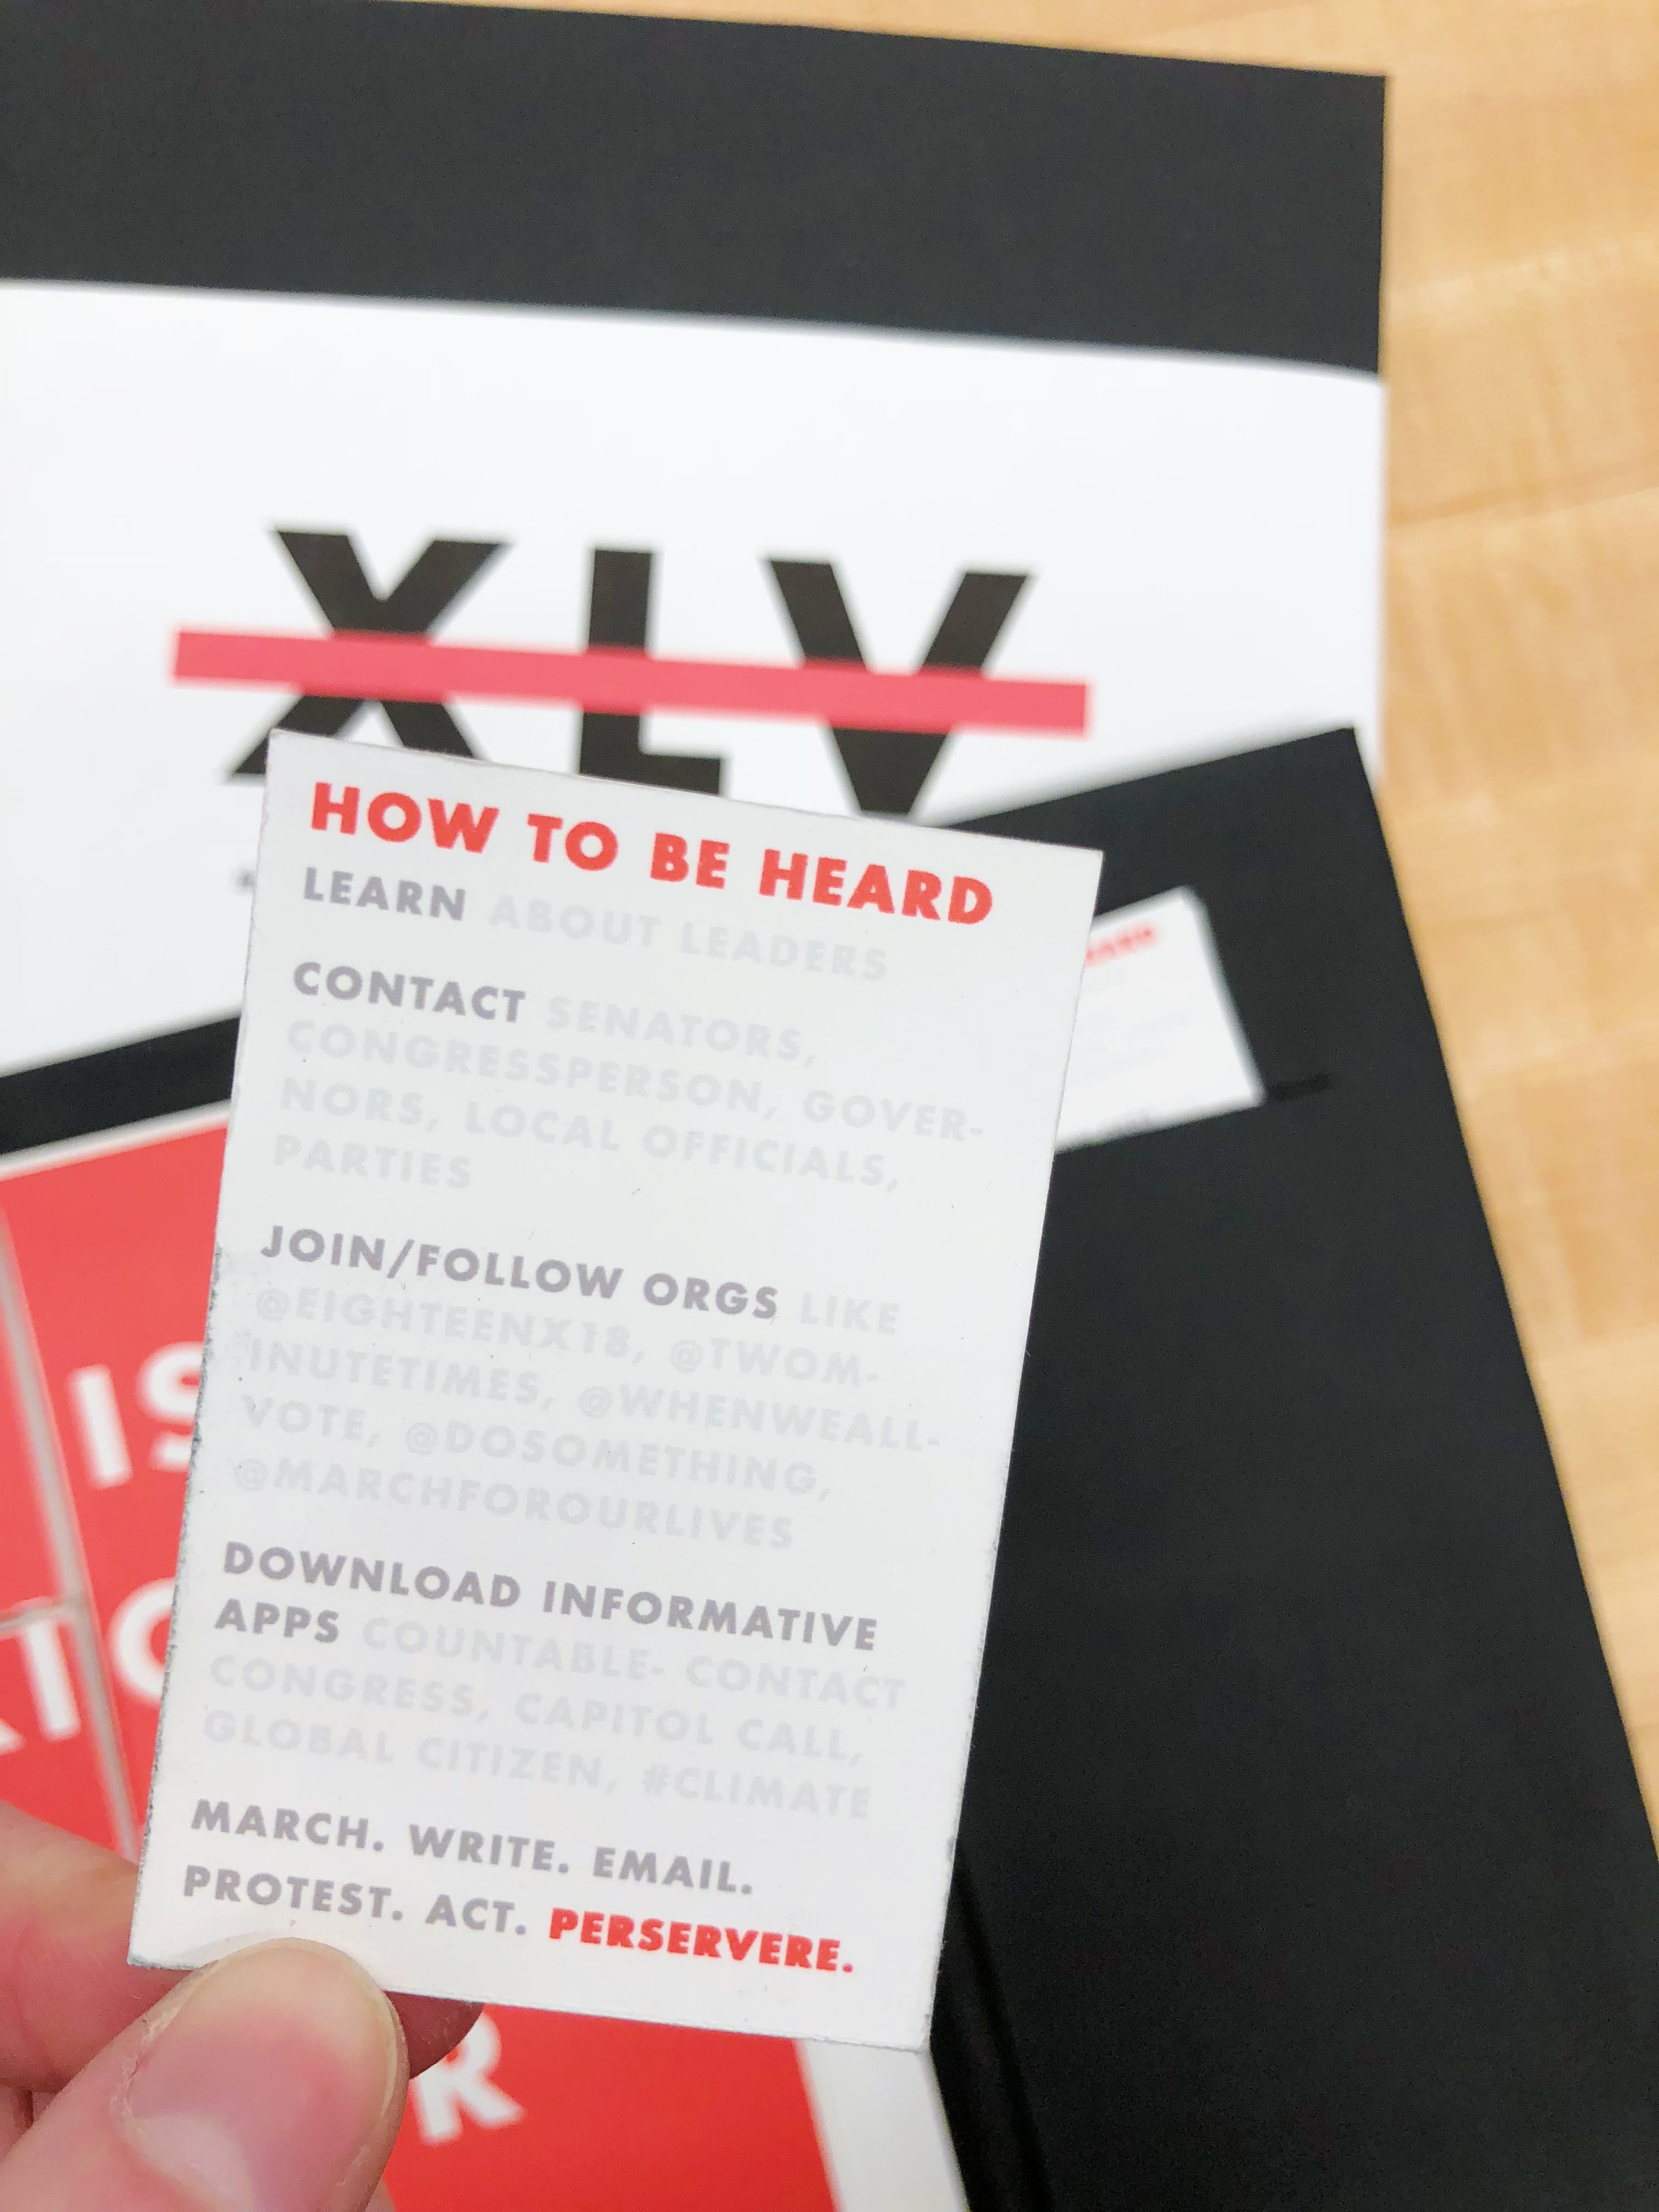 XLV: The destruction of the presidency + the rise of your voice: all from 725 Fifth Ave